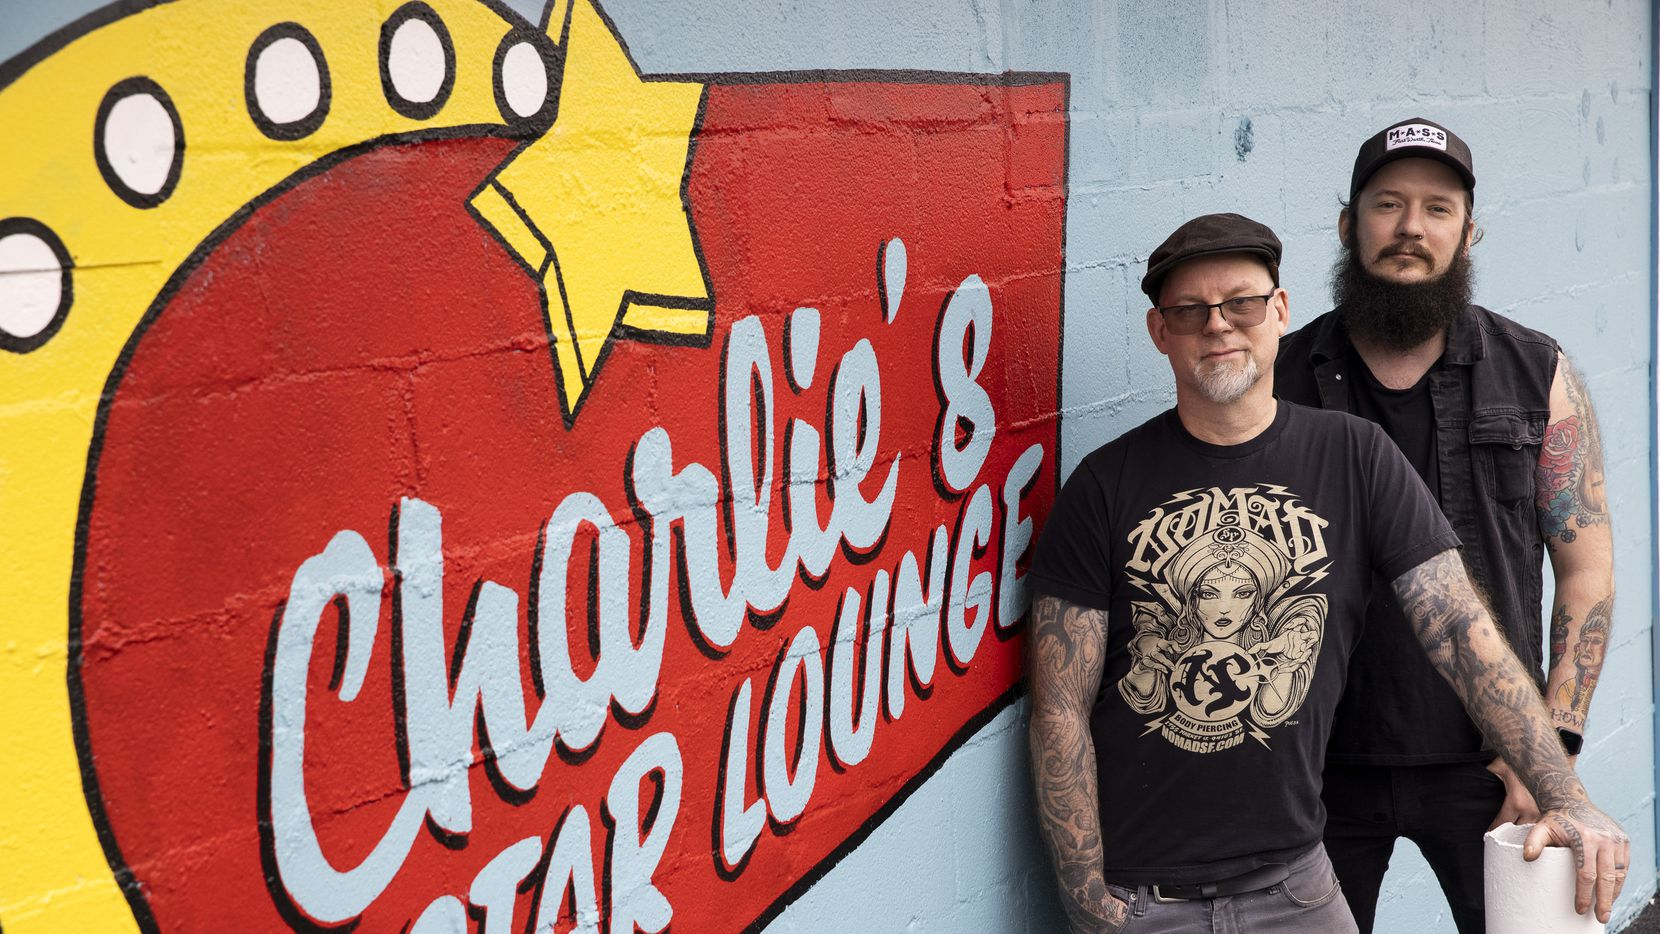 Co-owners Allen Falkner and Corey Howe, right, pose for a portrait outside of their newest venture, Charlie's Star Lounge — a dive bar opening soon in East Dallas and photographed on Thursday, April 22, 2021.